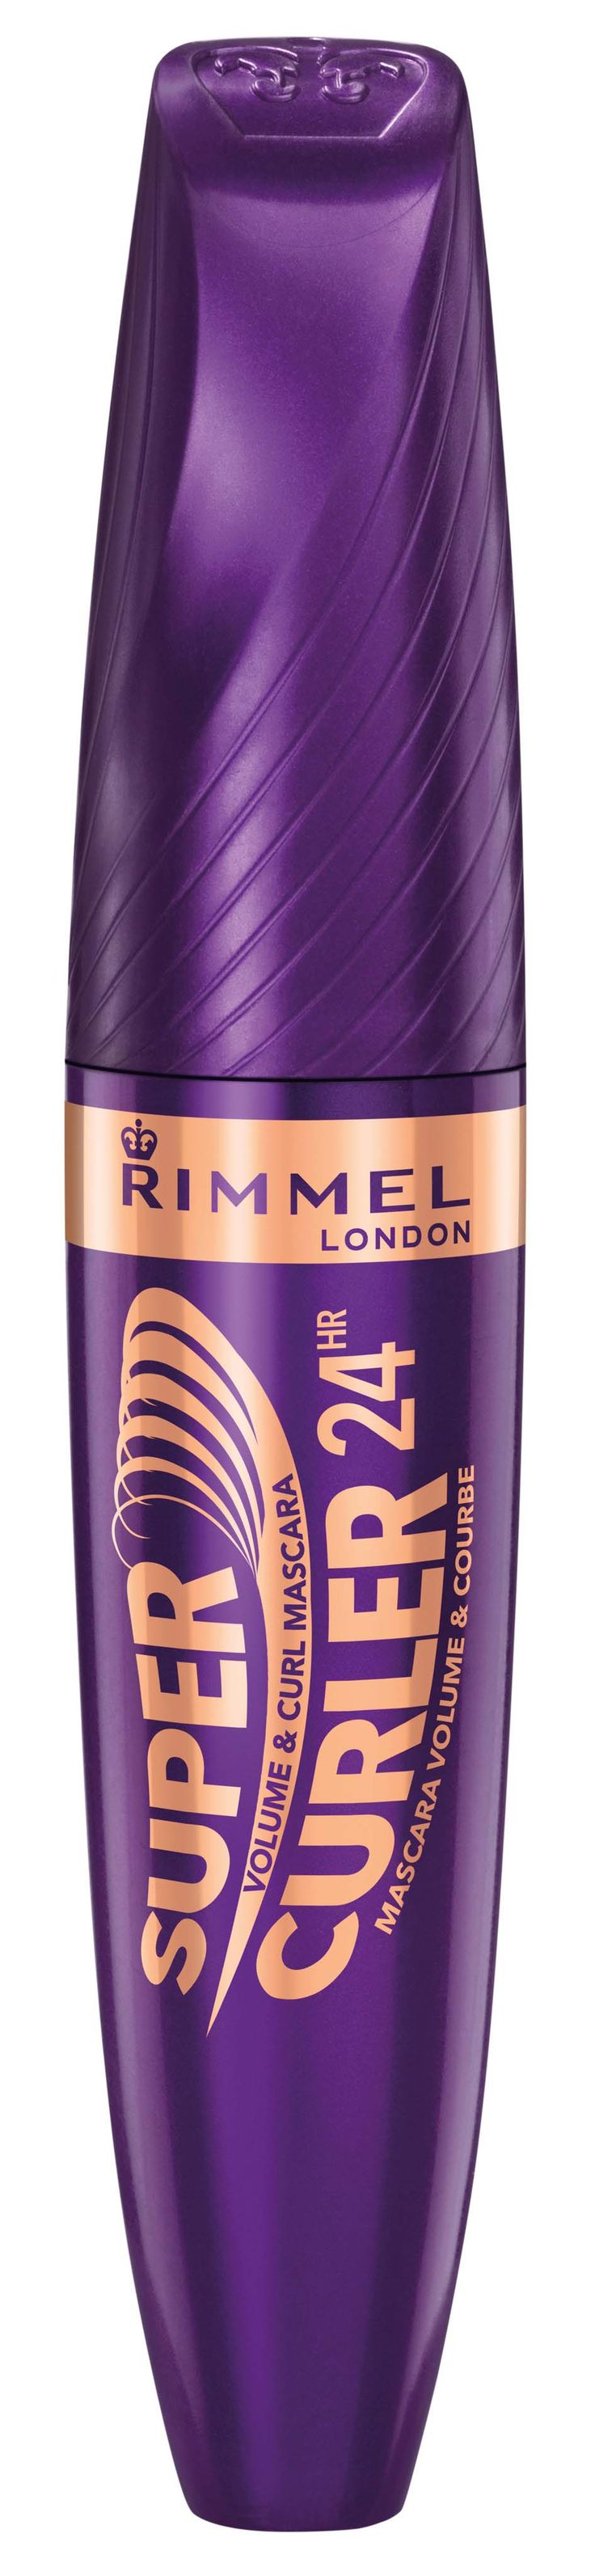 #RimmelLondon #Supercurler #mascara